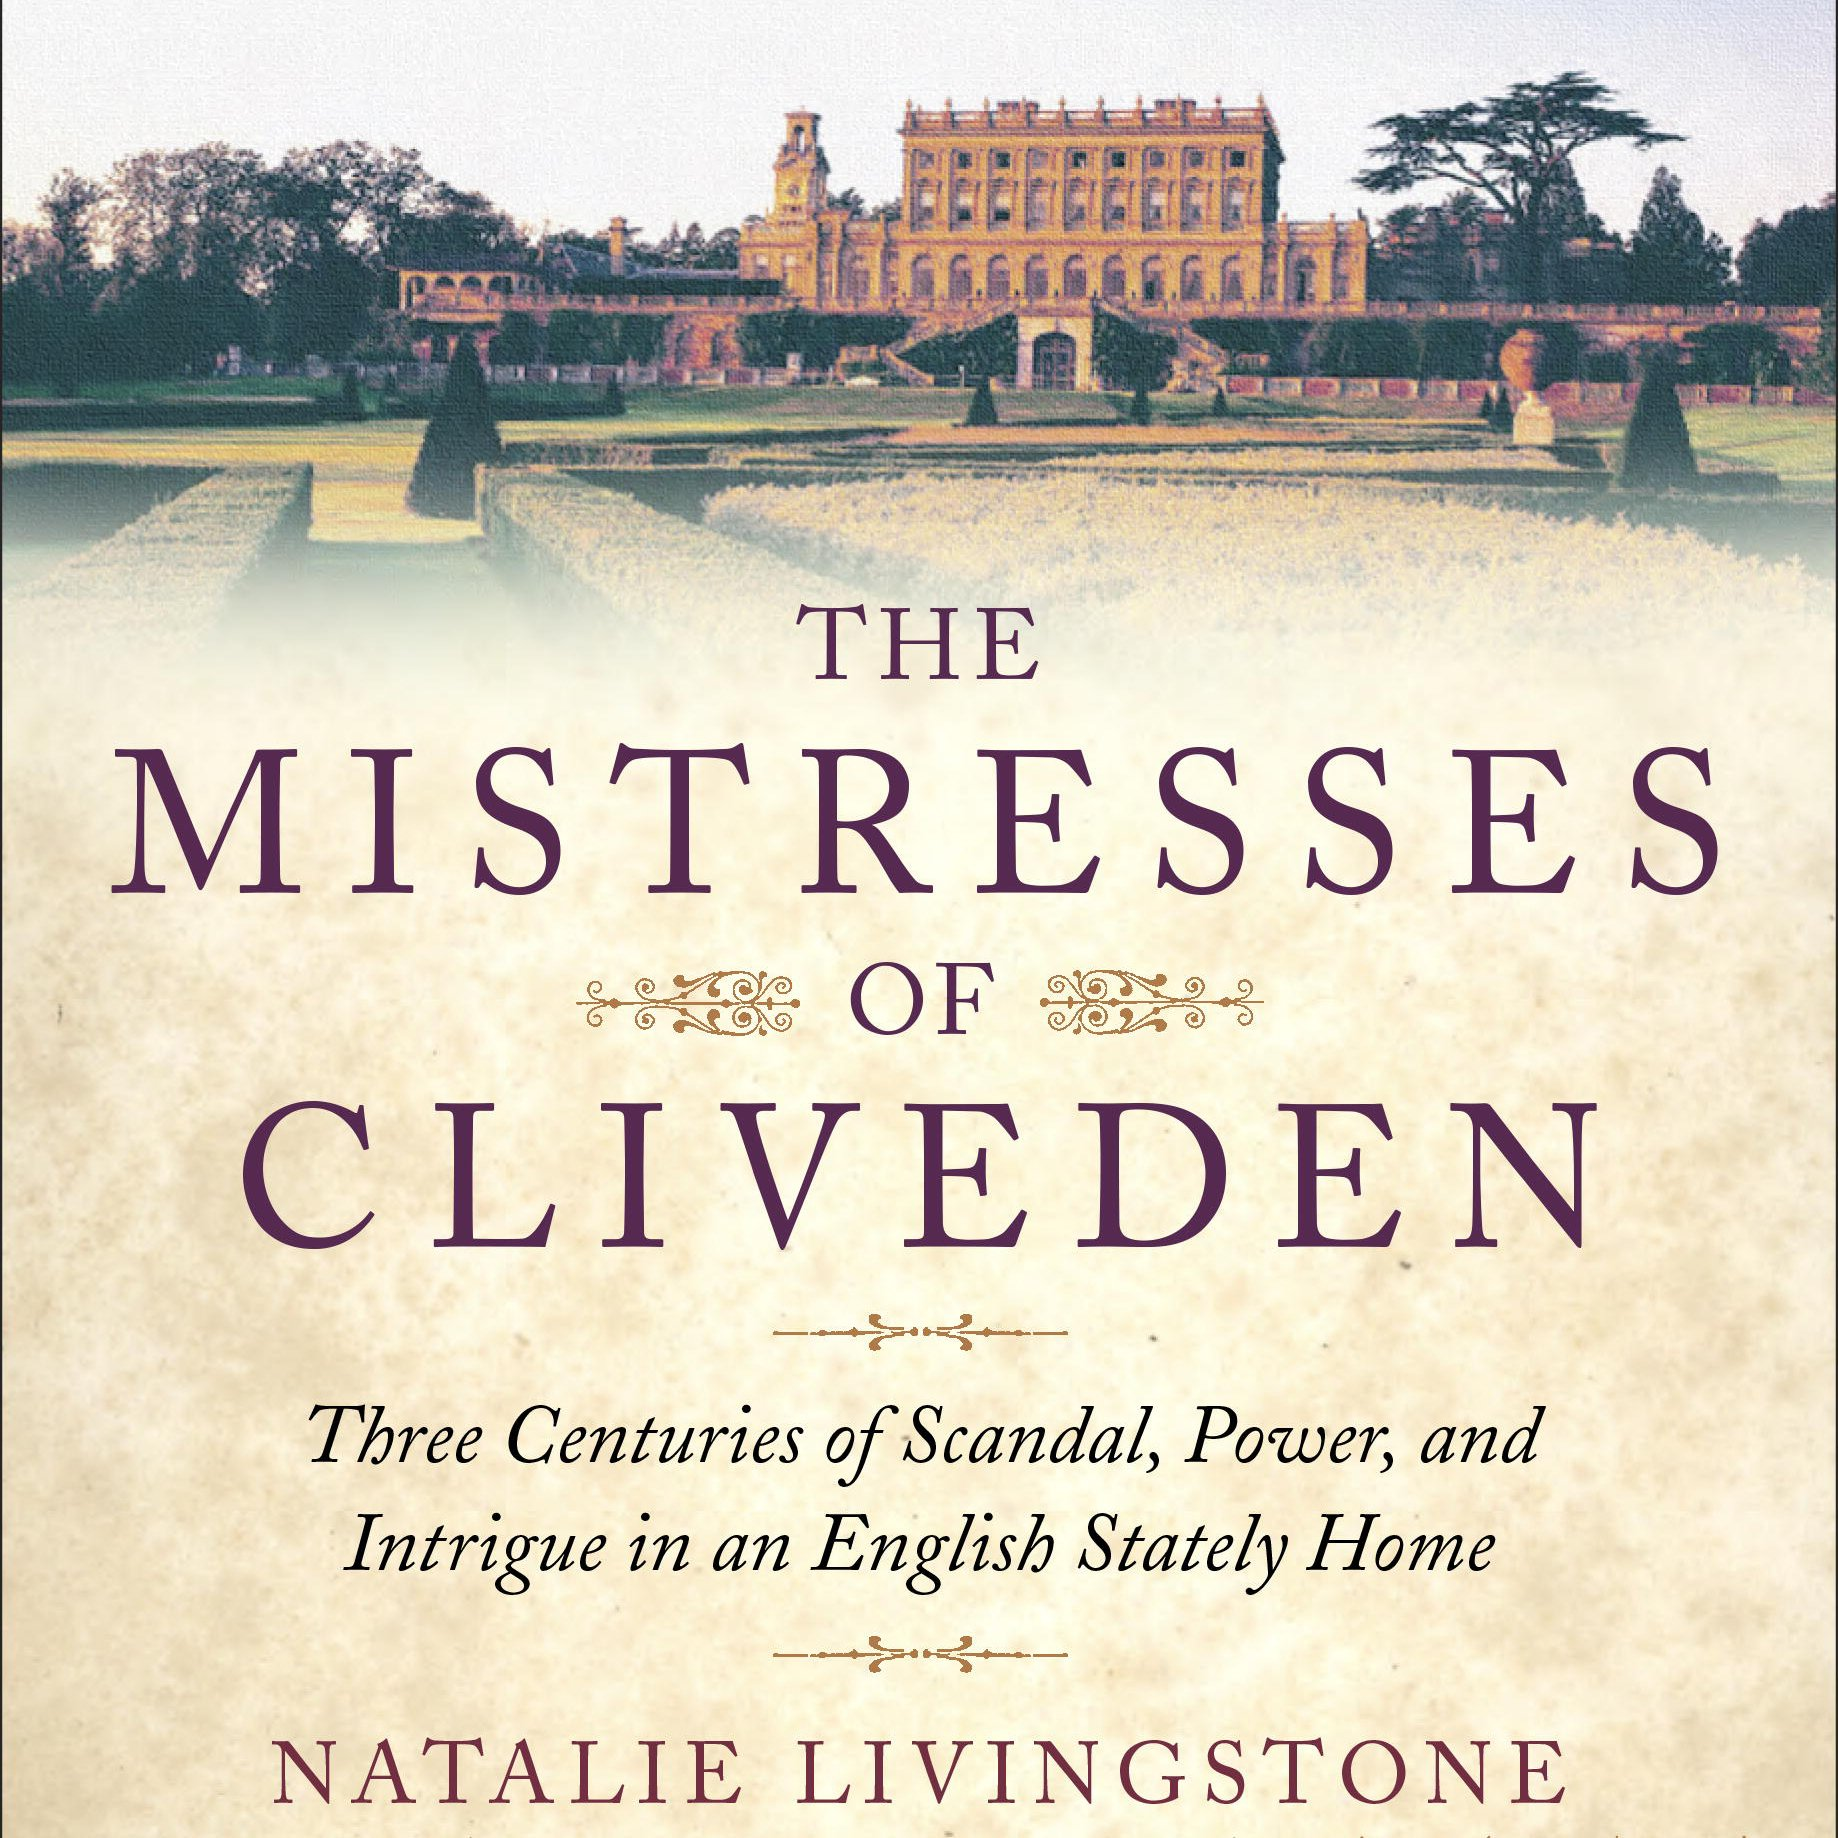 The Mistresses of Cliveden: Three Centuries of Scandal, Power, and Intrigue in an English Stately Home